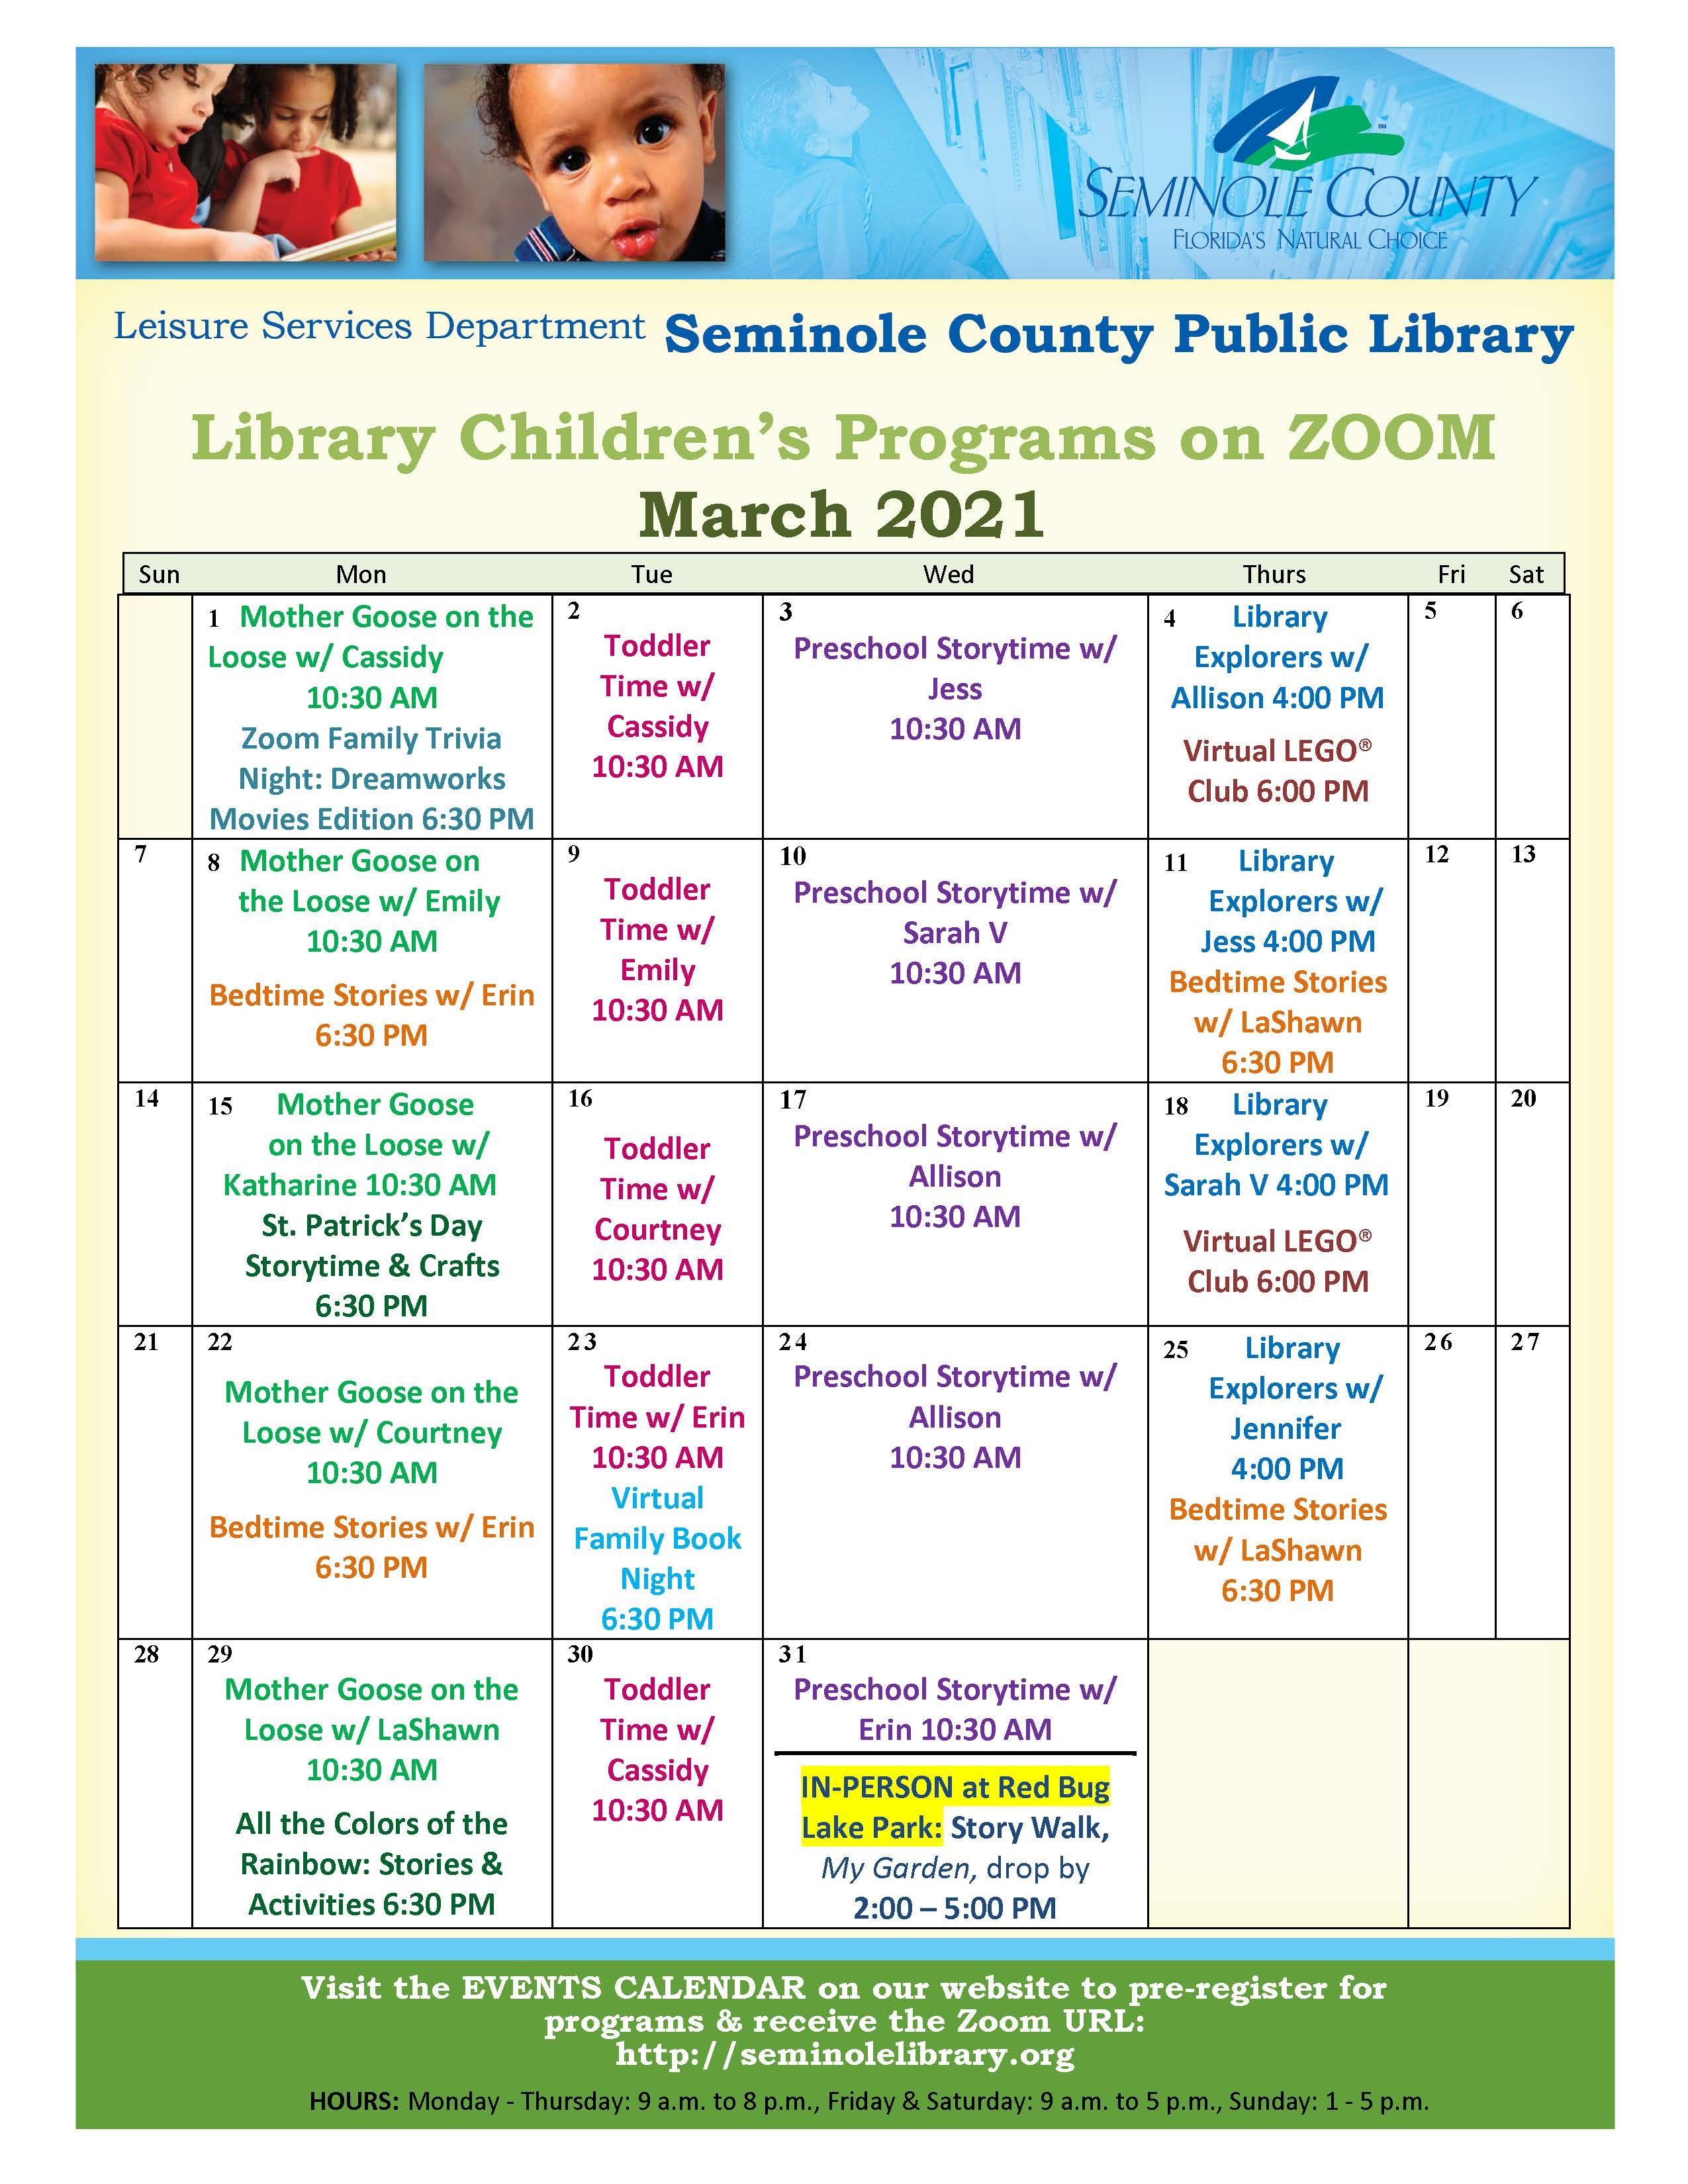 March 2021 Library Programs for Children on Zoom